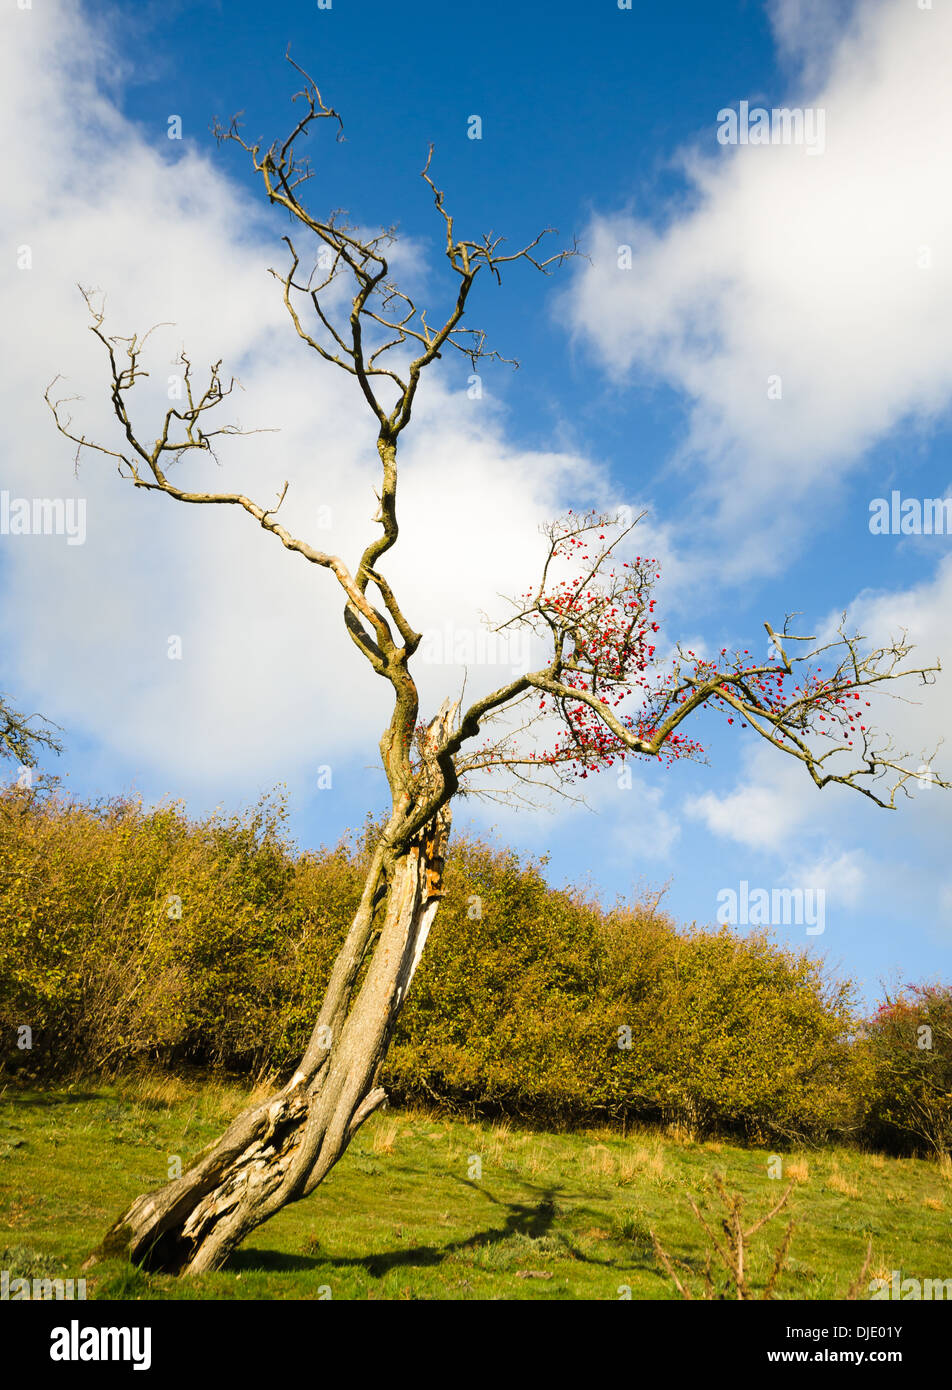 Old Hawthorn tree with haws, in winter - Stock Image